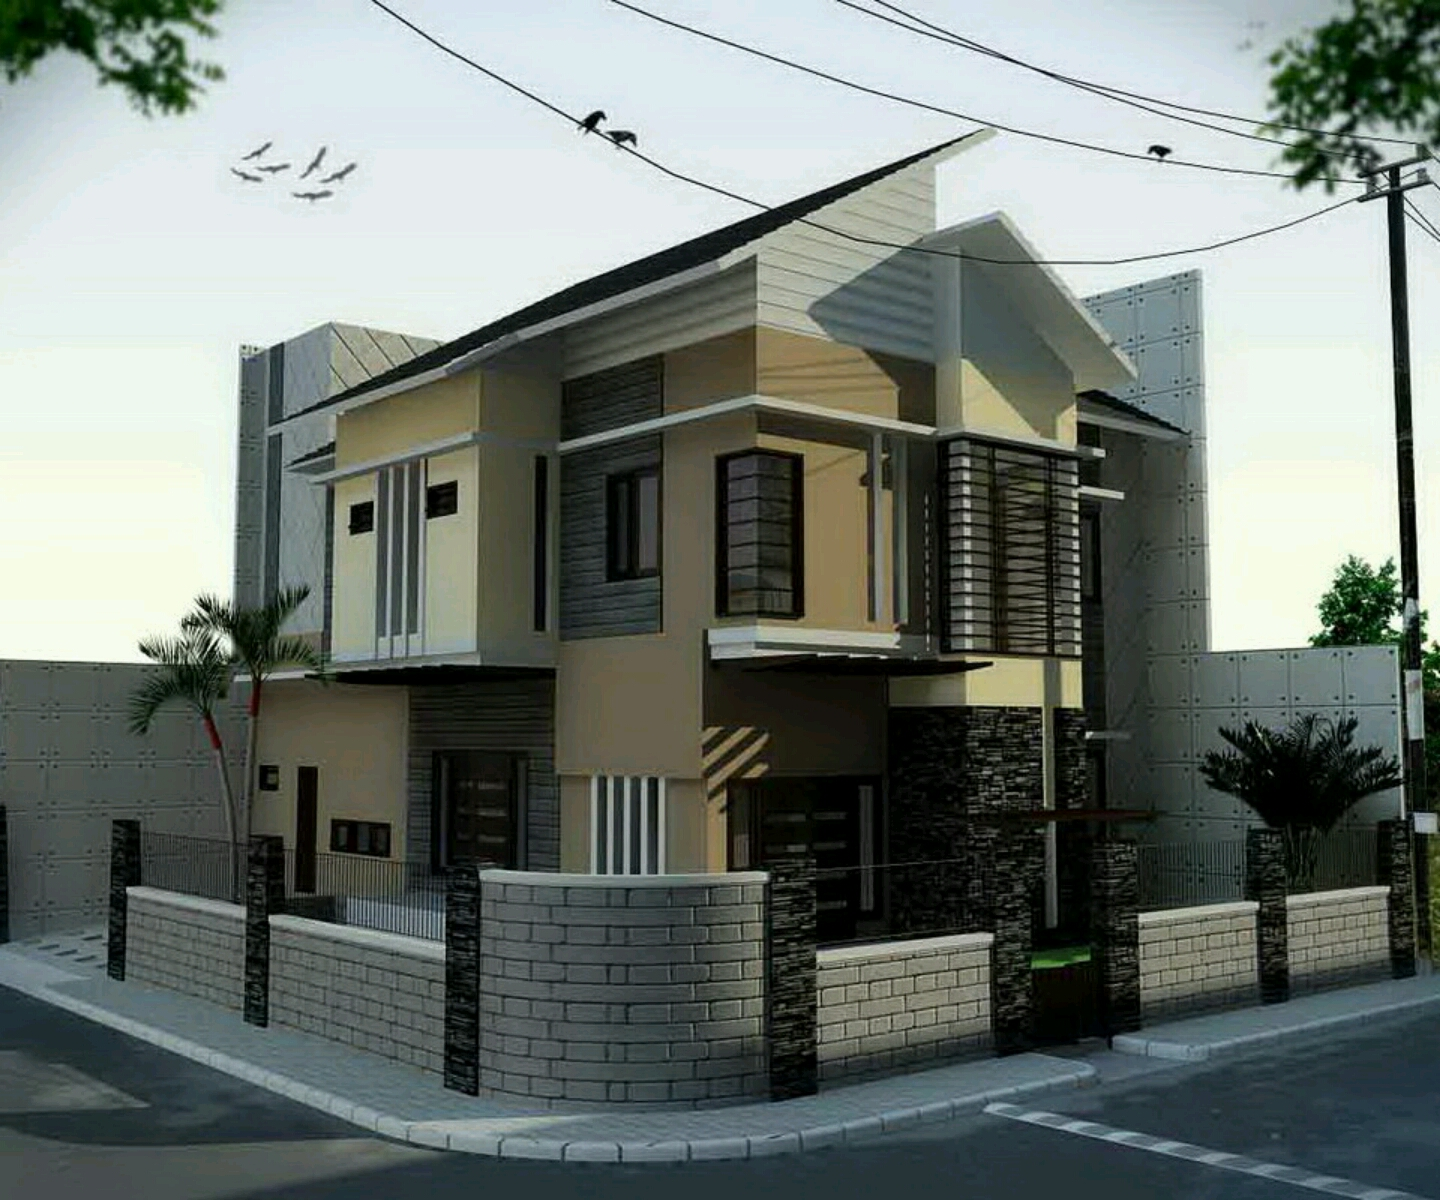 New home designs latest modern homes designs front views for Latest house design images